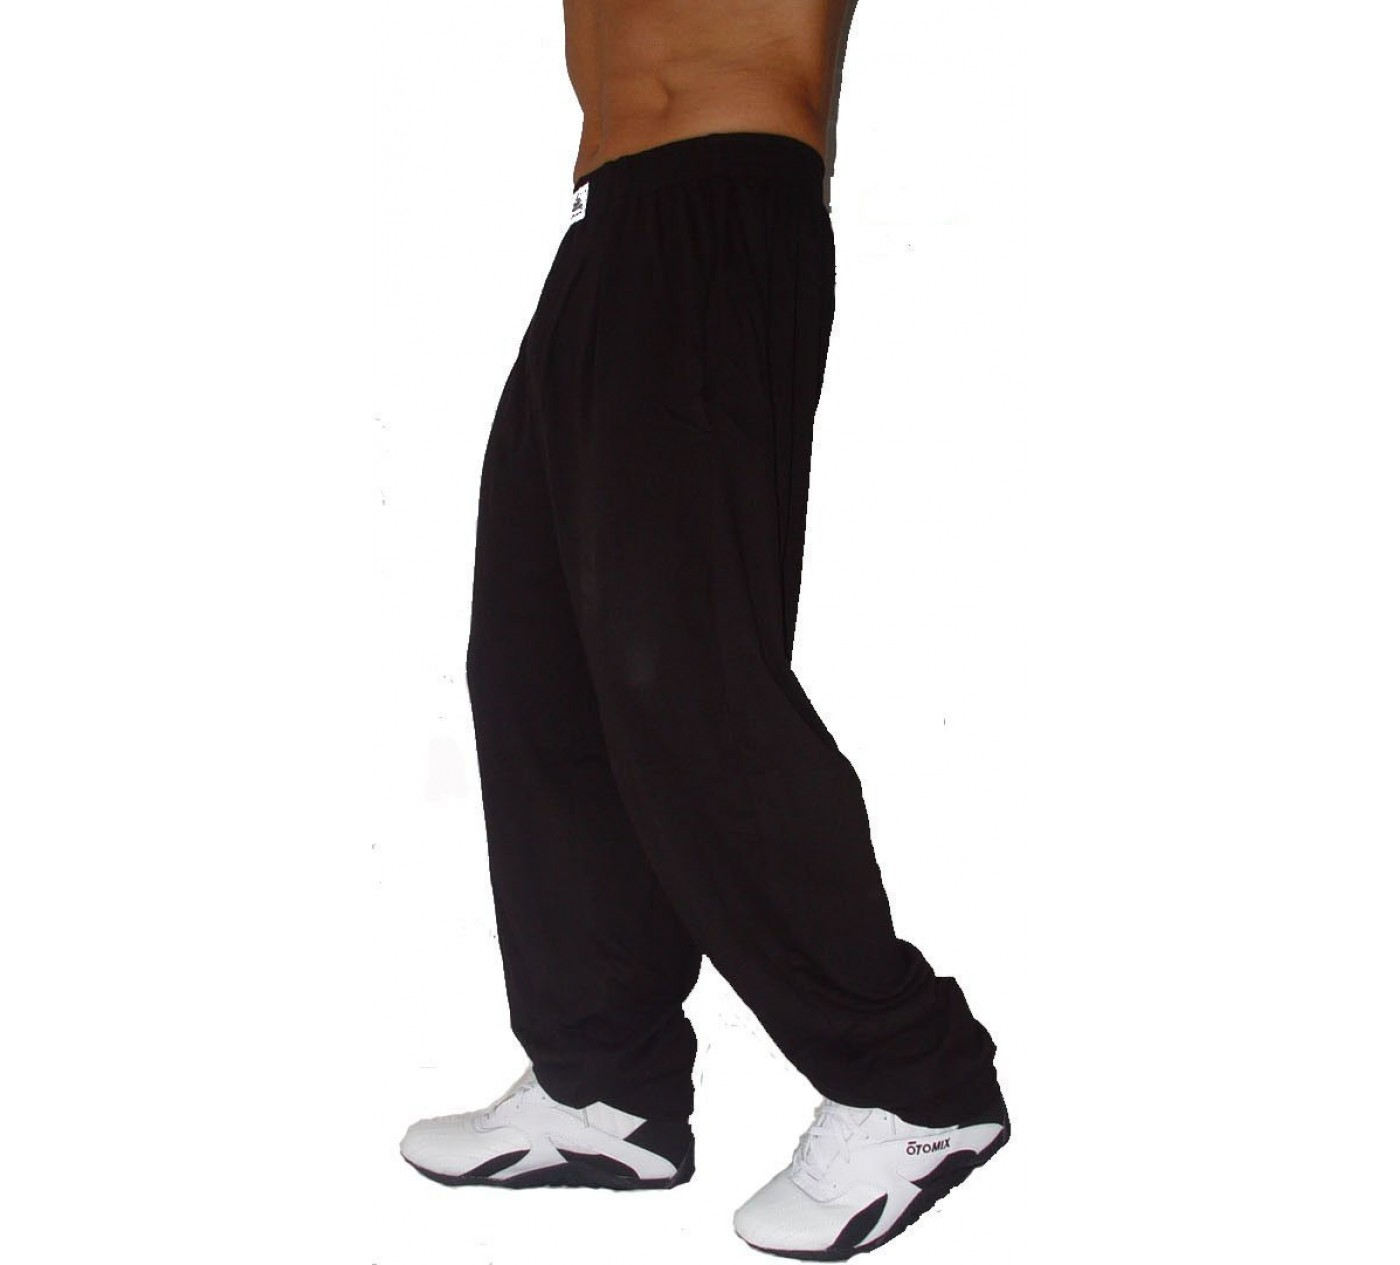 C500 Workout Pants by Crazy Wear - Solid Black